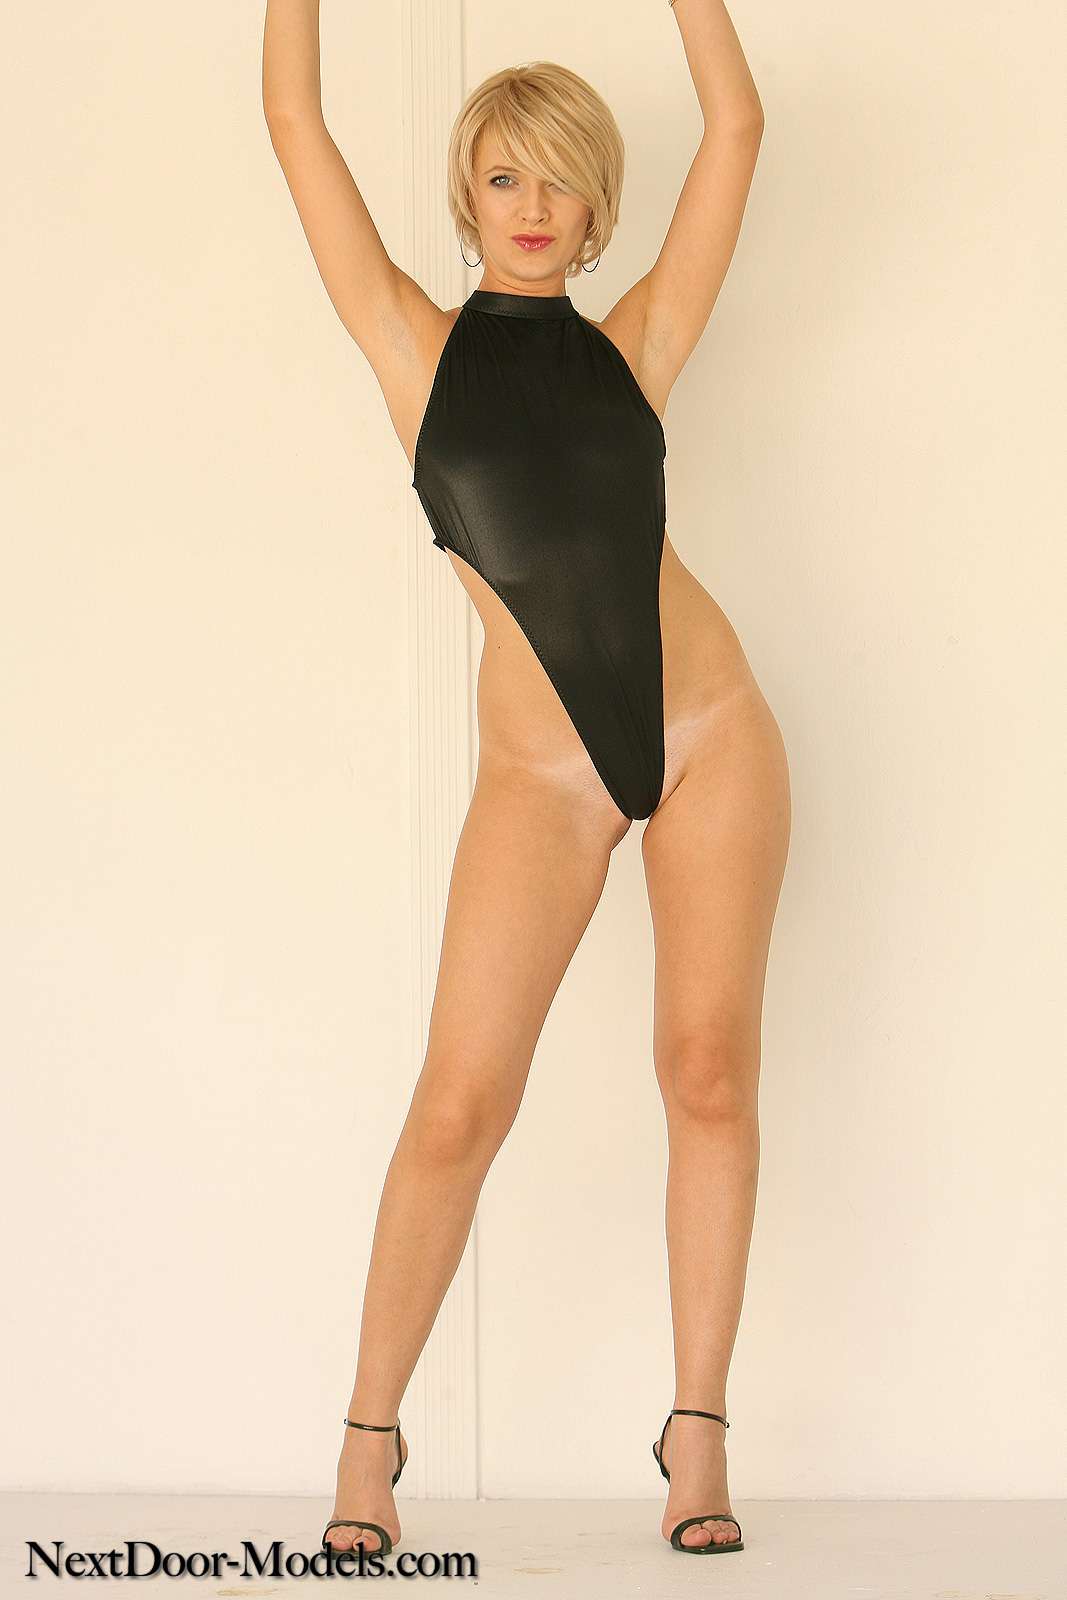 High Cut Thong Leotard Porn - Maleena loves her high cut, shiny black one piece...did we mention it\\'s  also a thong?